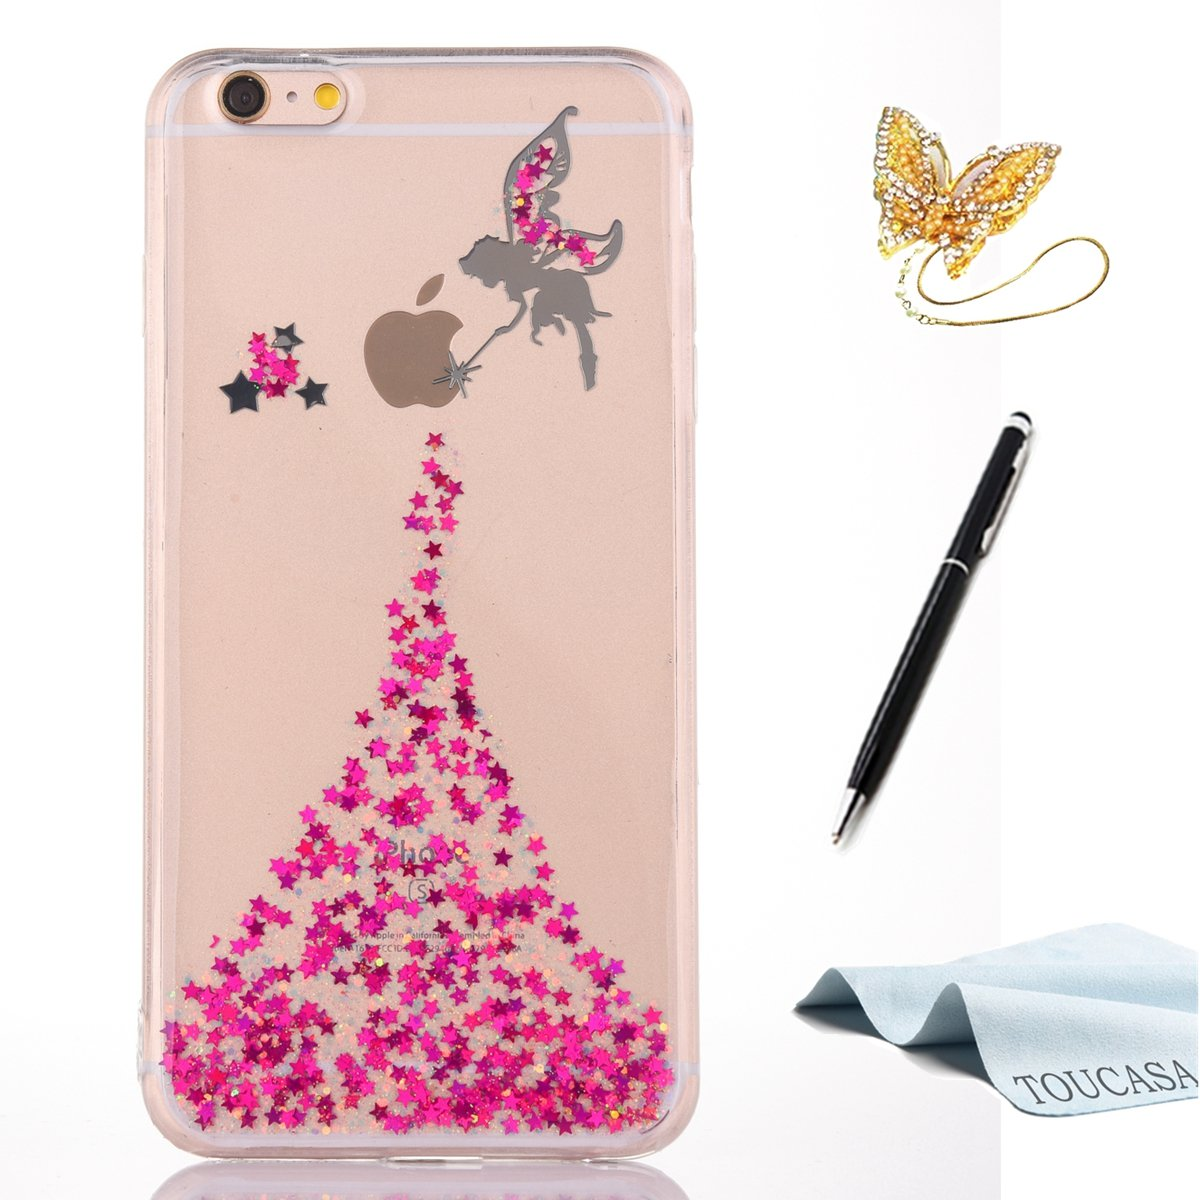 Coque iPhone 8, Housse iPhone 7, TOUCASA Anti Choc Silicone Coque, Bling Mince Souple Premium Hybrid Crystal Clear Flex Soft Gel Cover Skin Extra Slim Cristal Clair Gel TPU Neuf Style Brillant Bling Glitter Sparkle Pailletee Silicone Caoutchouc Cas Flash C